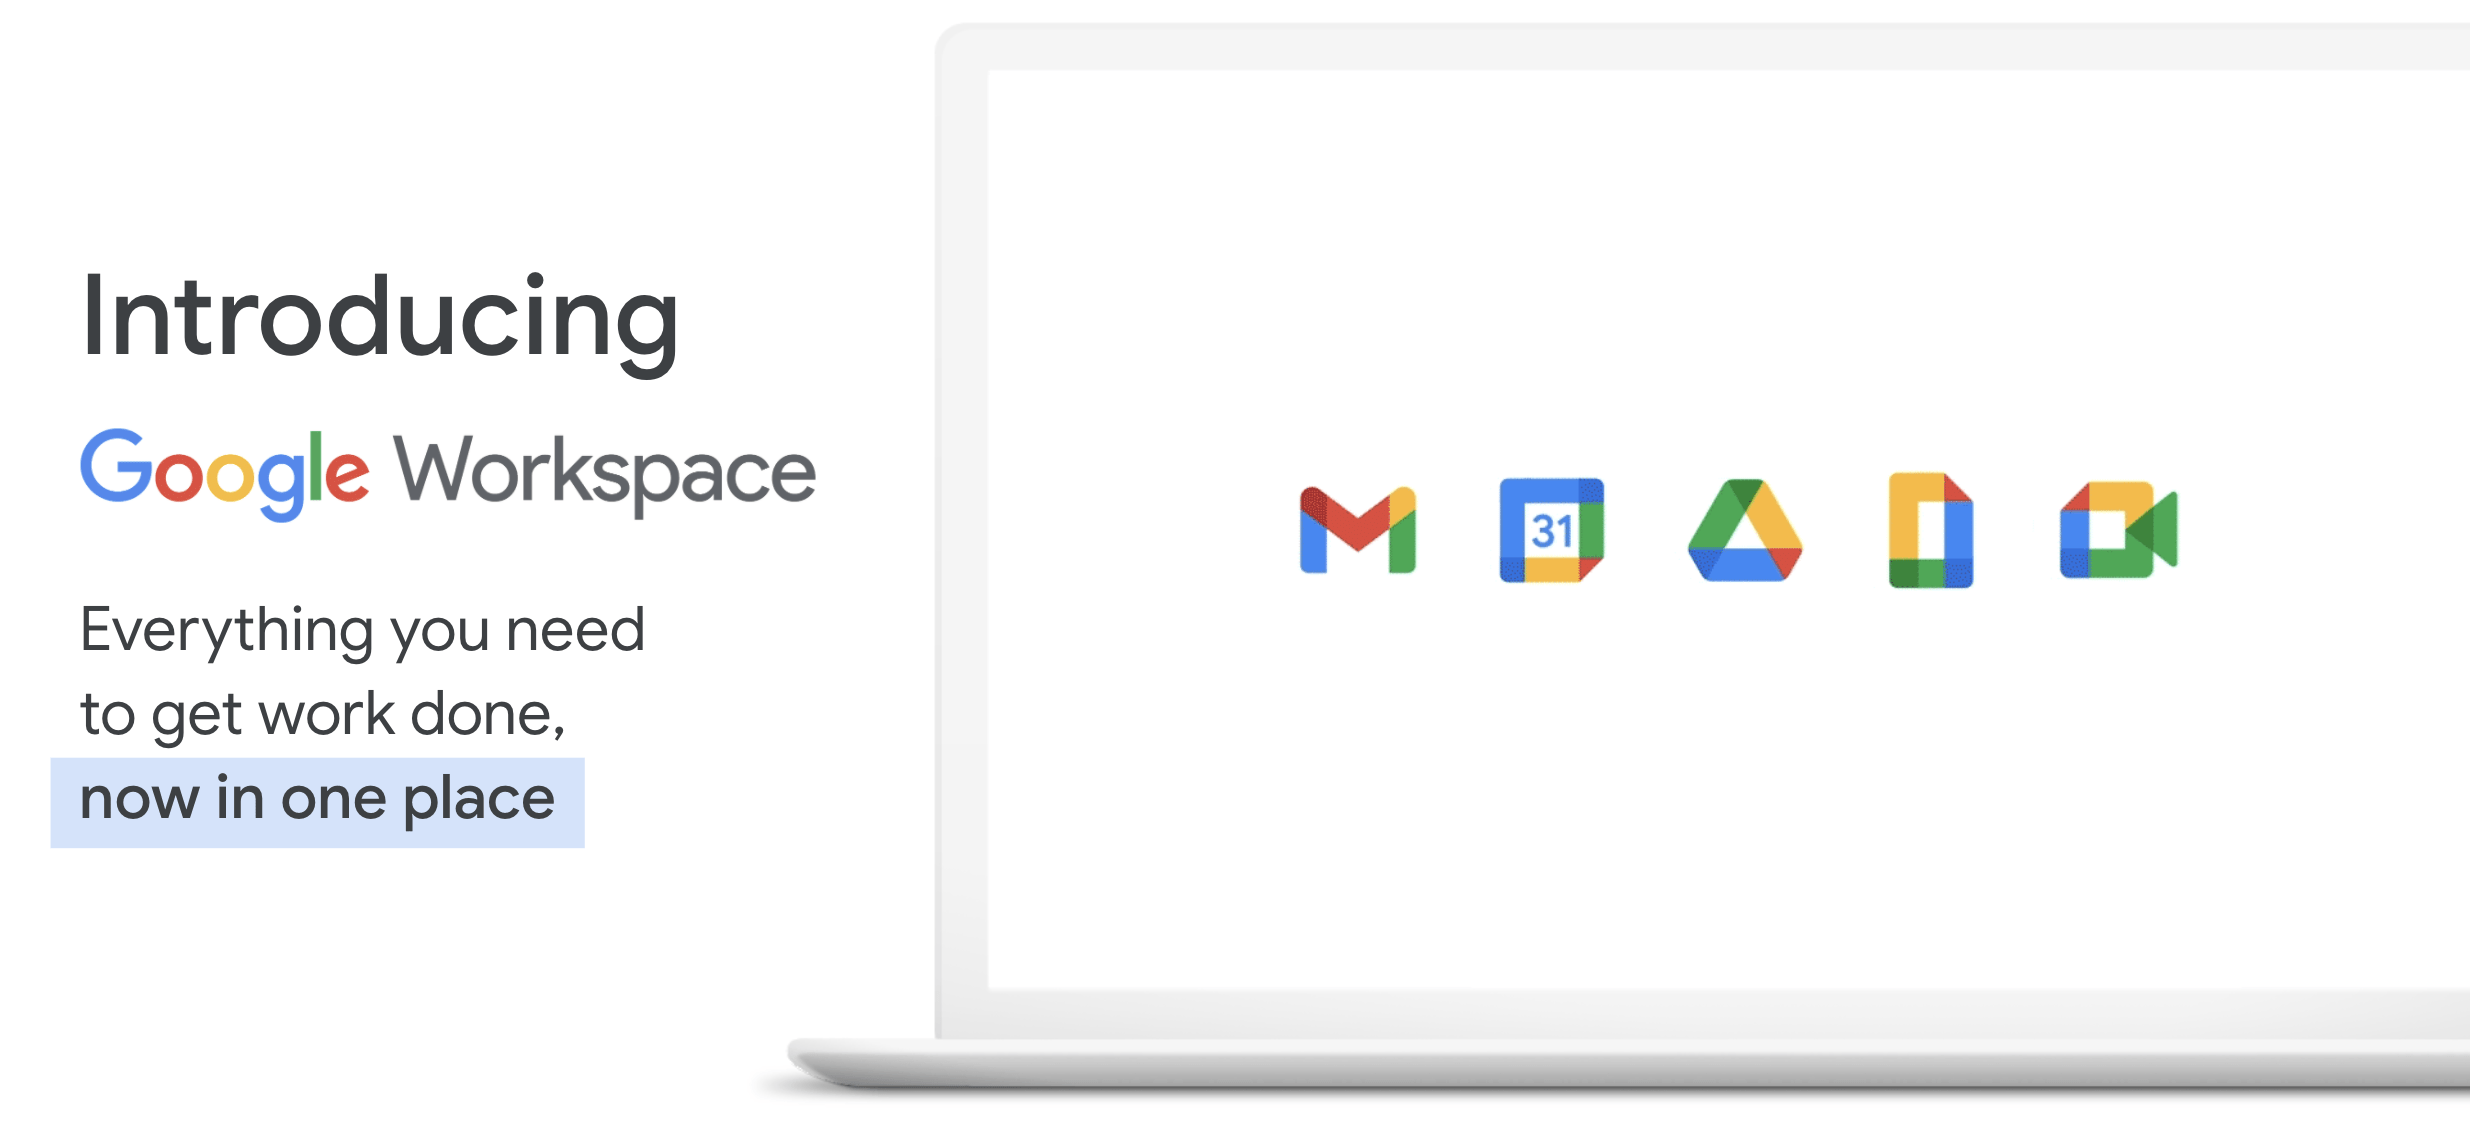 Introducing-Google-Workspace